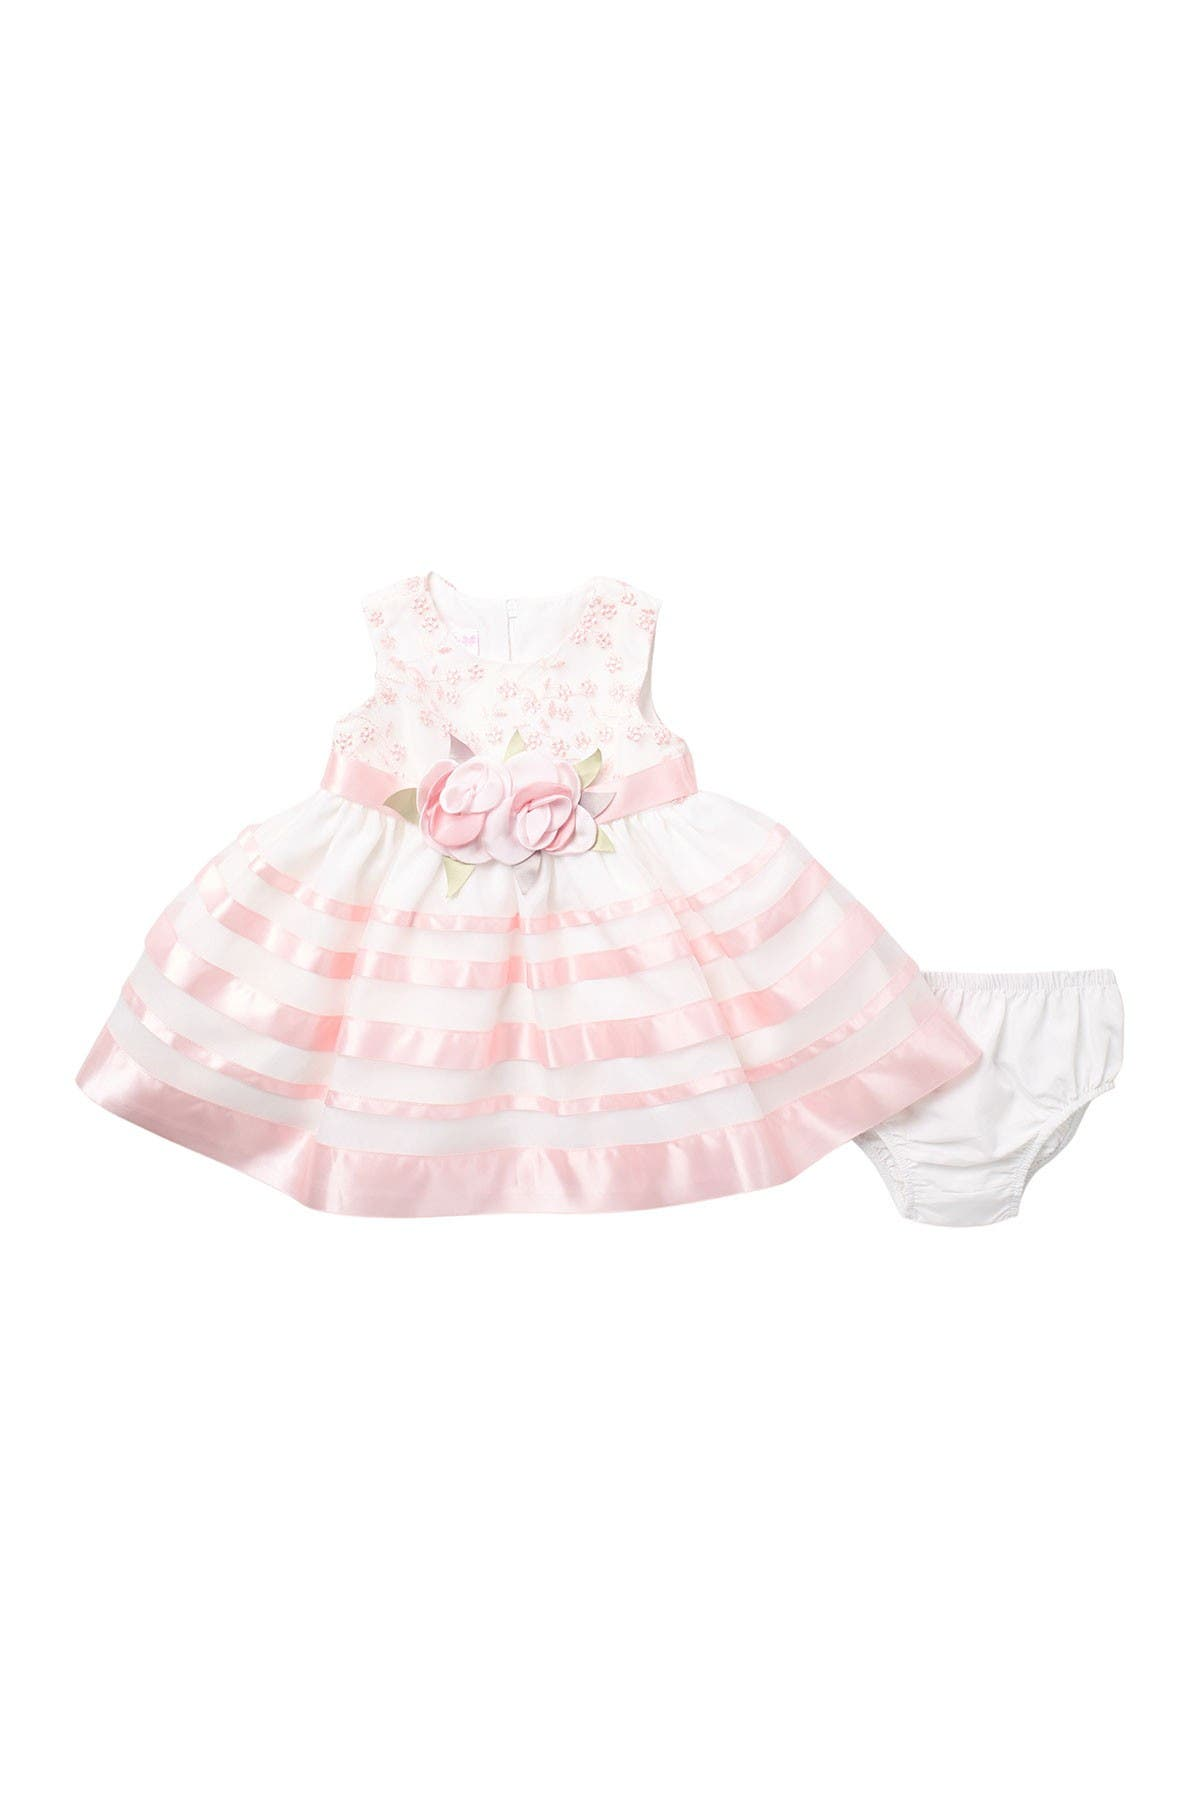 Image of GERSON & GERSON Floral Embroidered Ribbon Dress & Bloomers Set